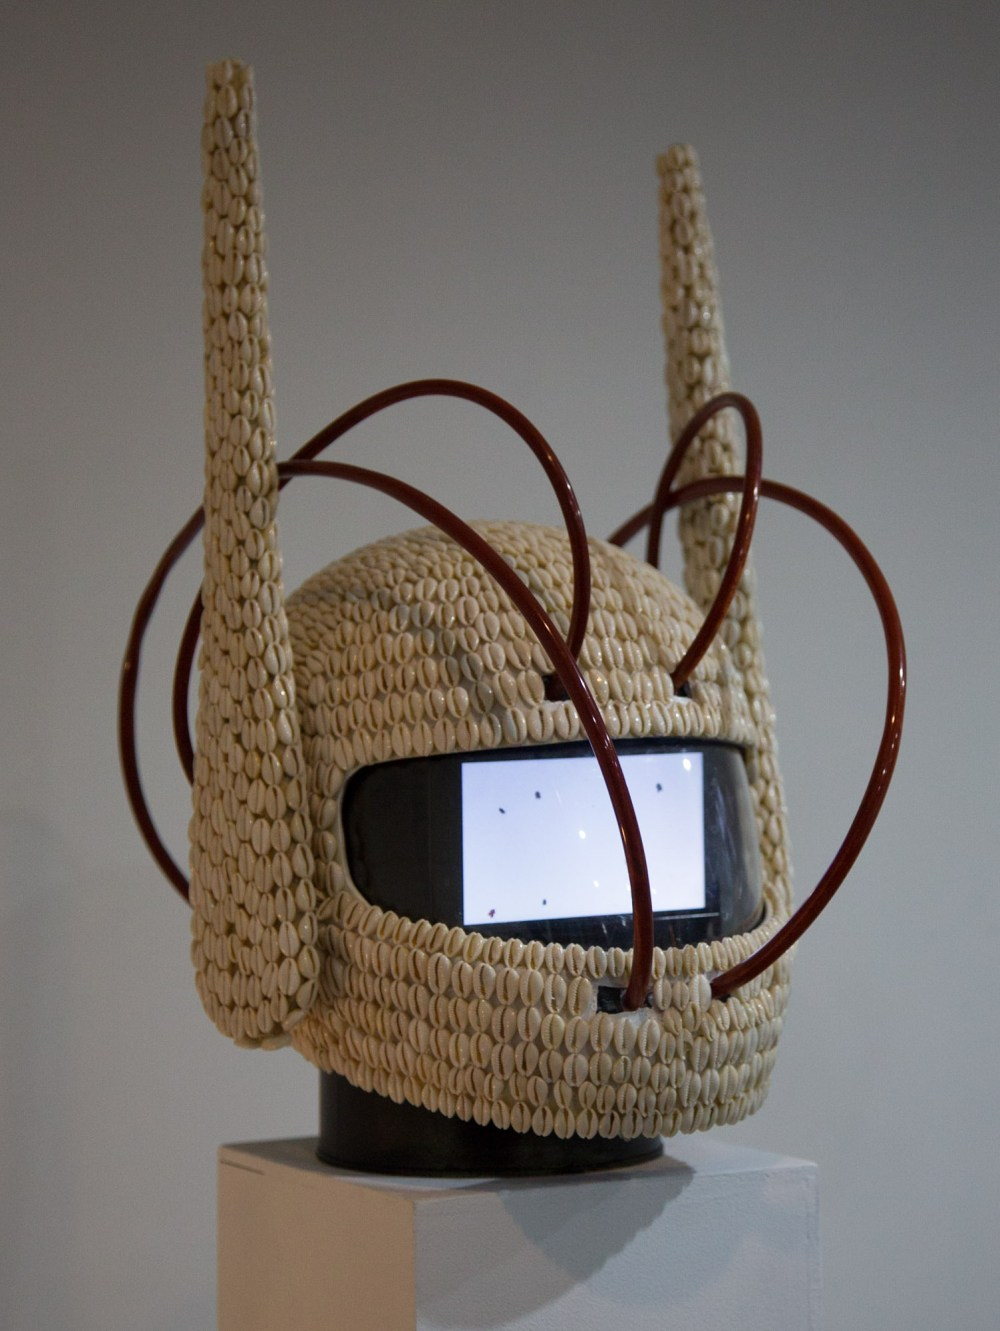 a afrofuturism piece of art, a helmet with knitted horns on it and a screen inside